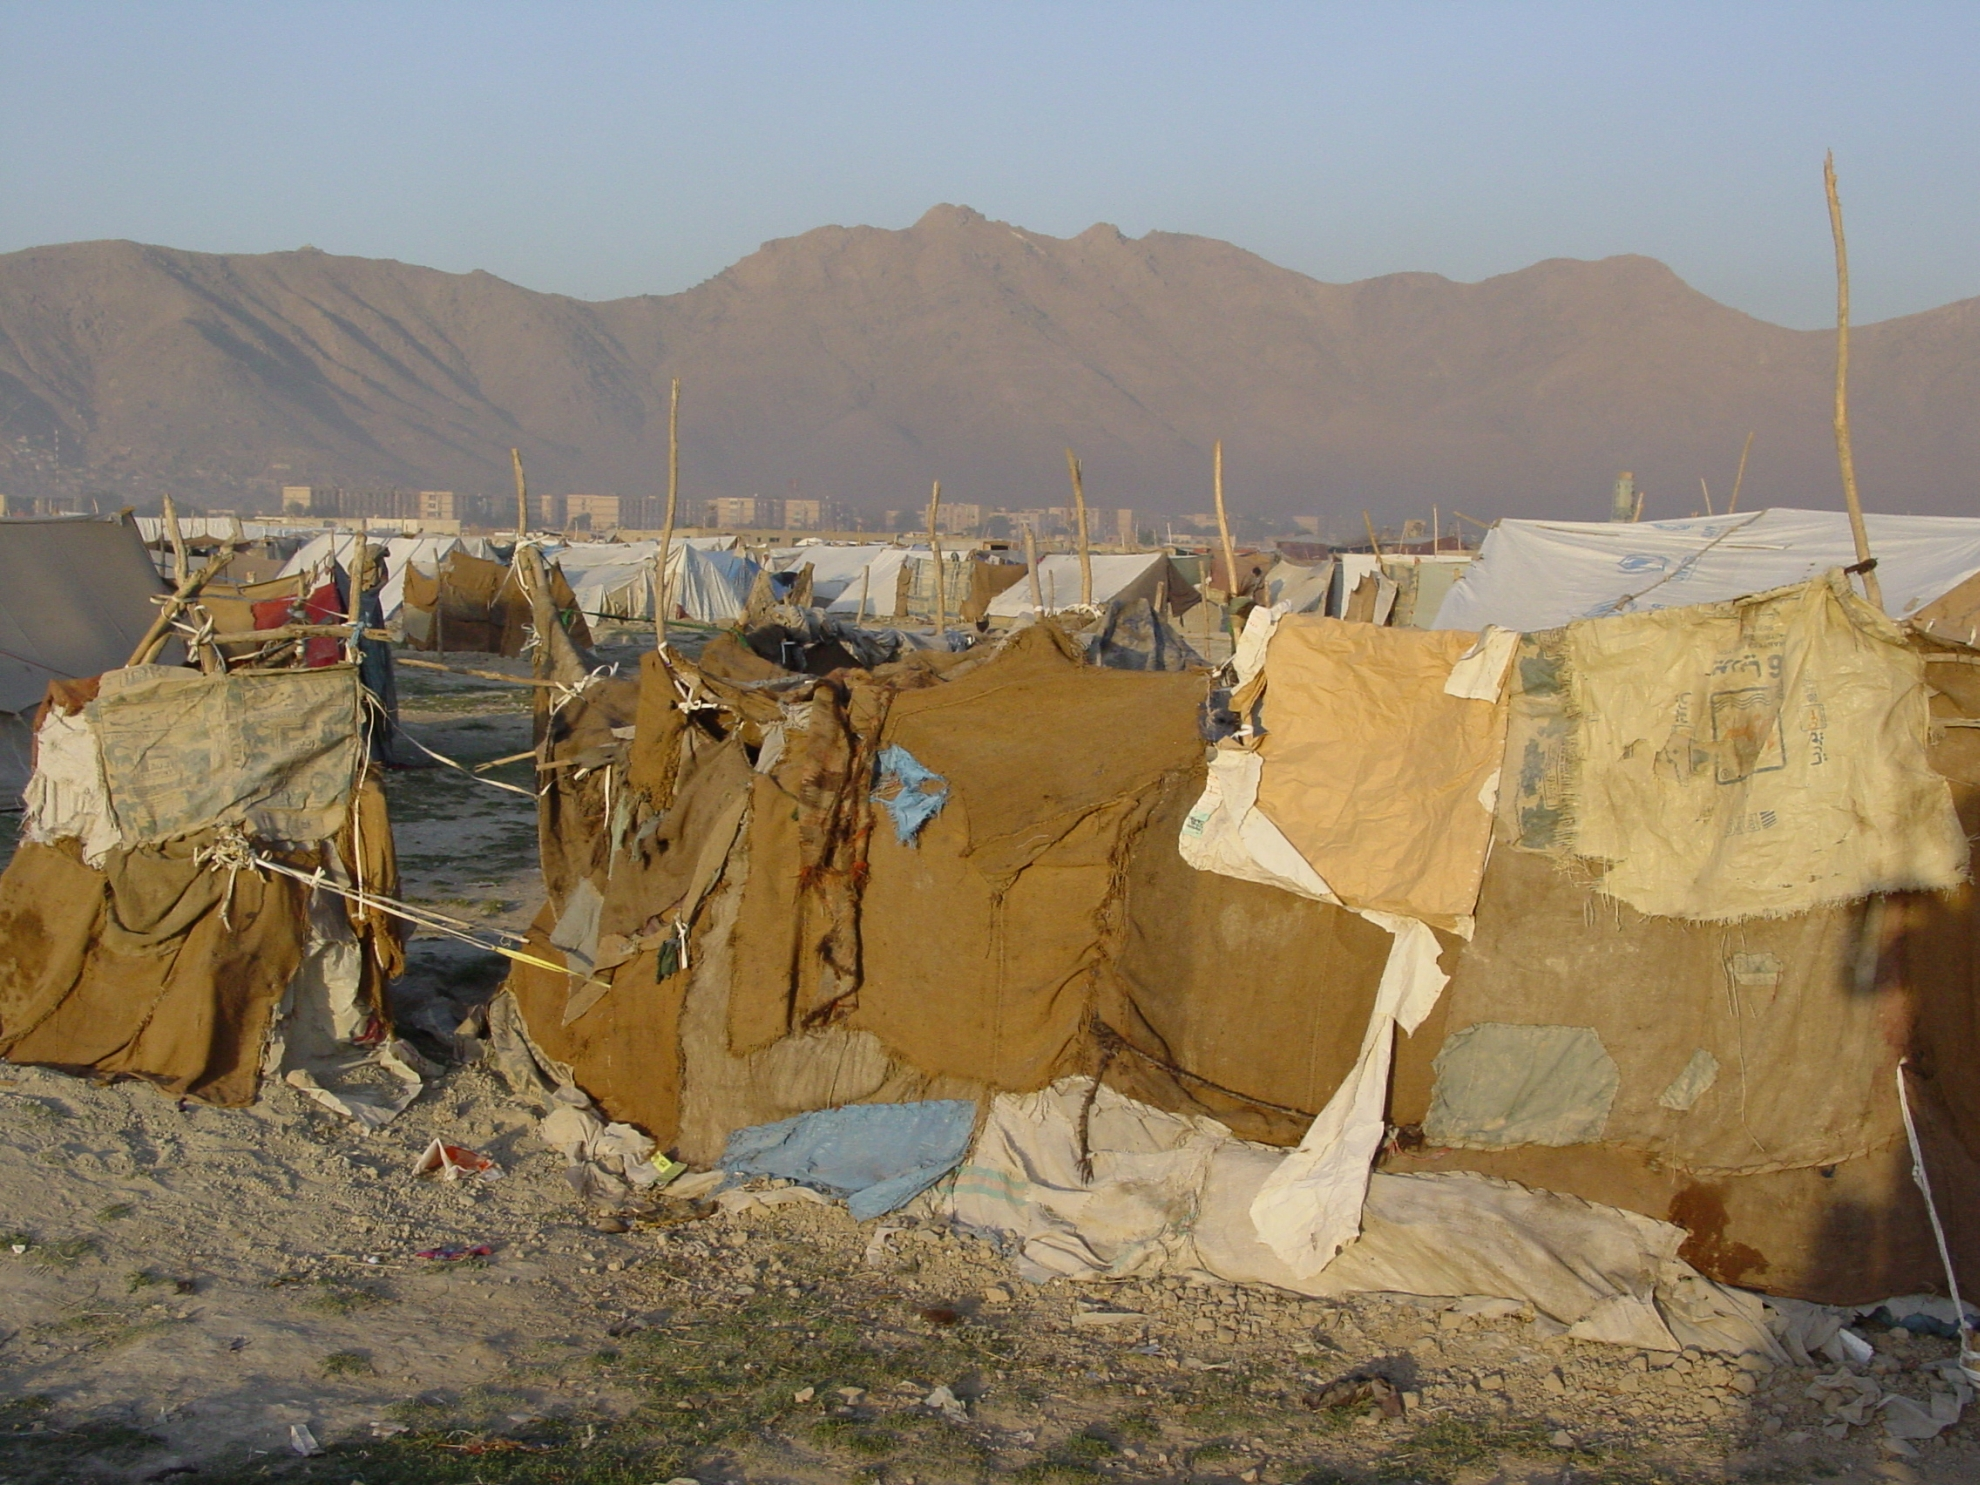 This is an informal refugee camp, meaning that the refugees are in fact squatters. Thus, the government may force them to leave the land. Photo: Jens Kjær Jensen, 2003